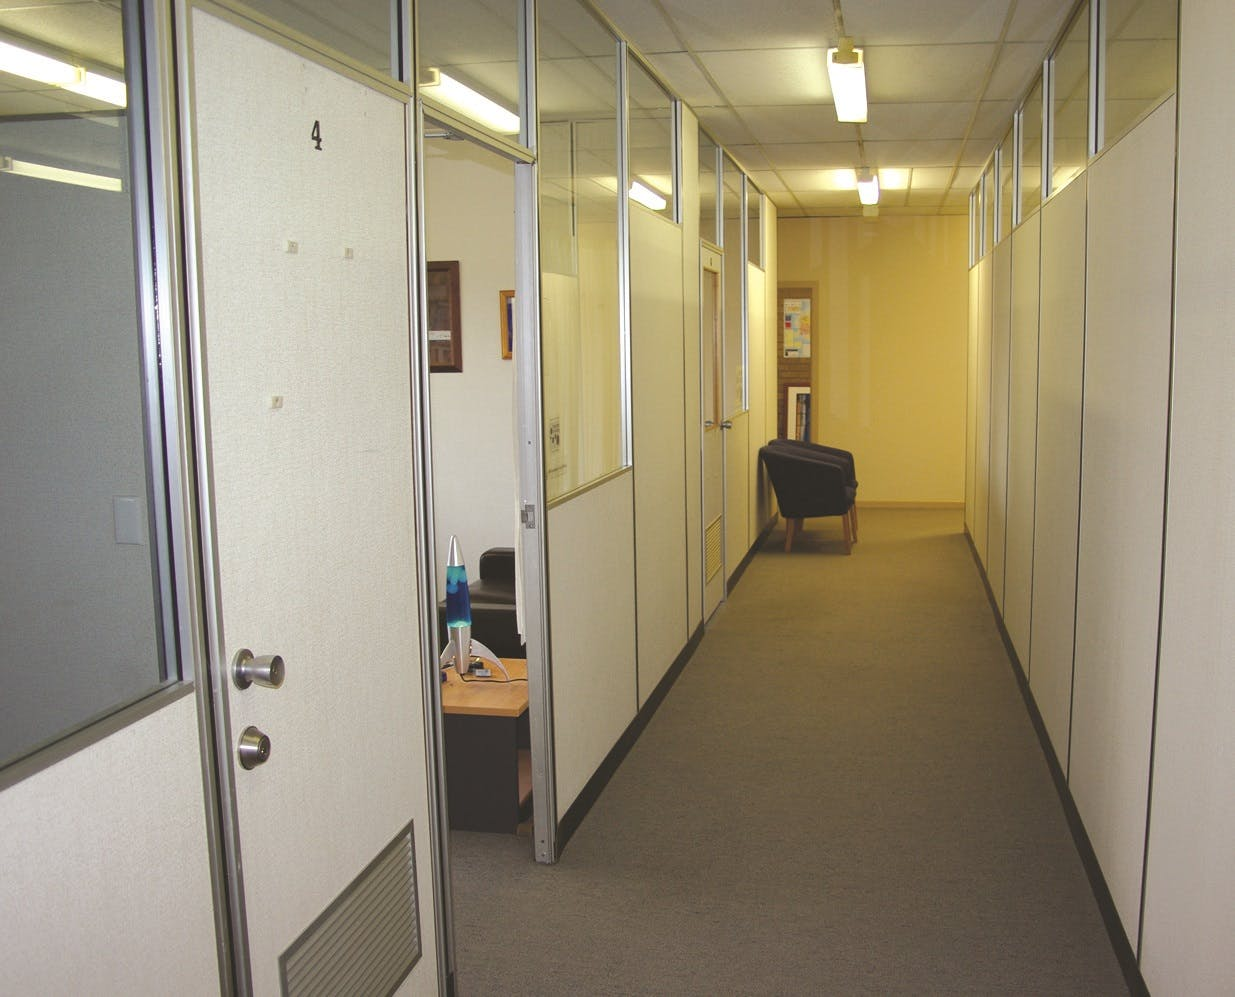 Office 7, private office at Bendigo 1, image 1